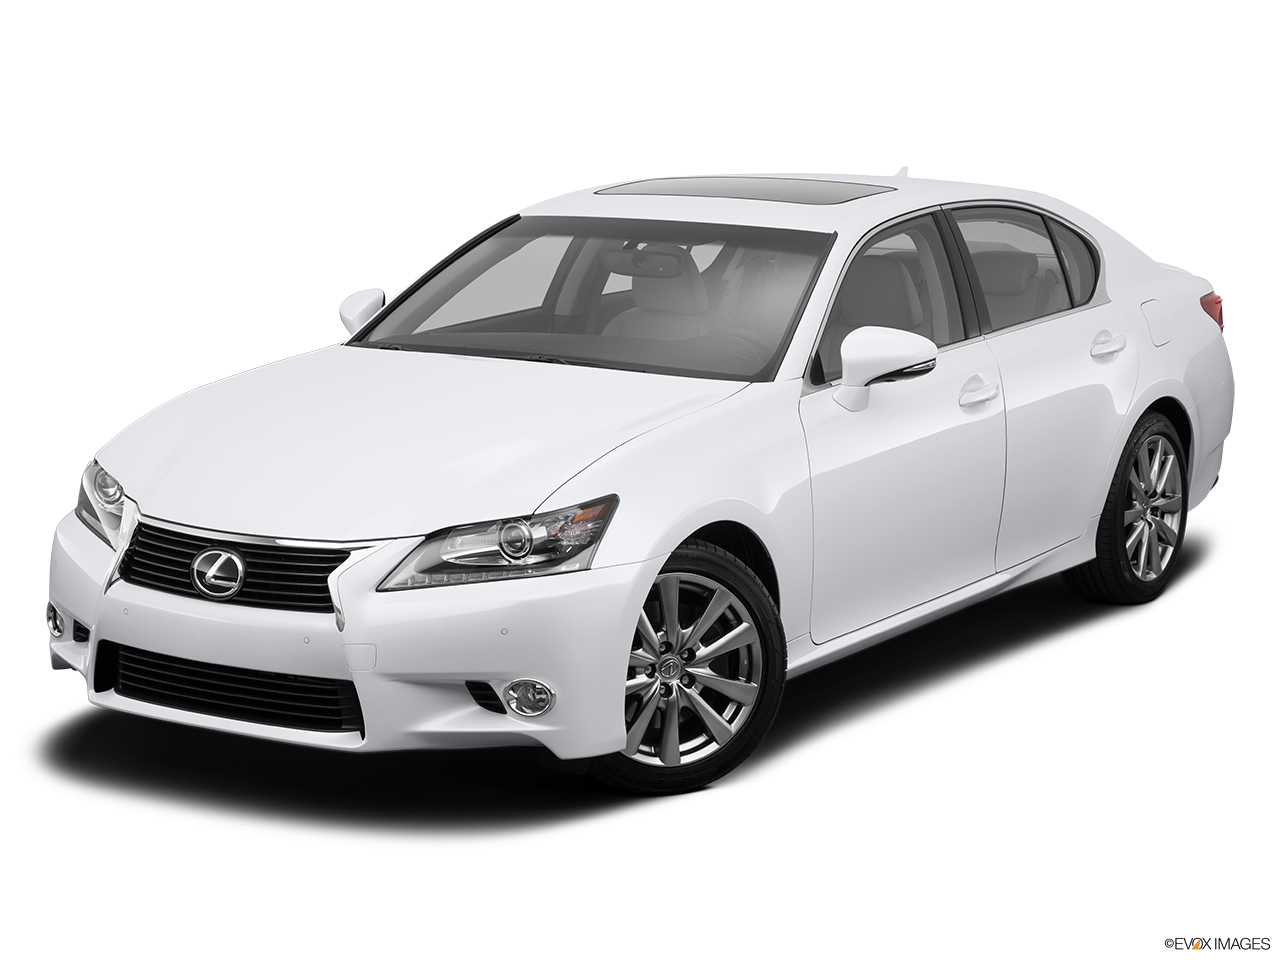 2014 lexus gs 350 sedan awd. Black Bedroom Furniture Sets. Home Design Ideas